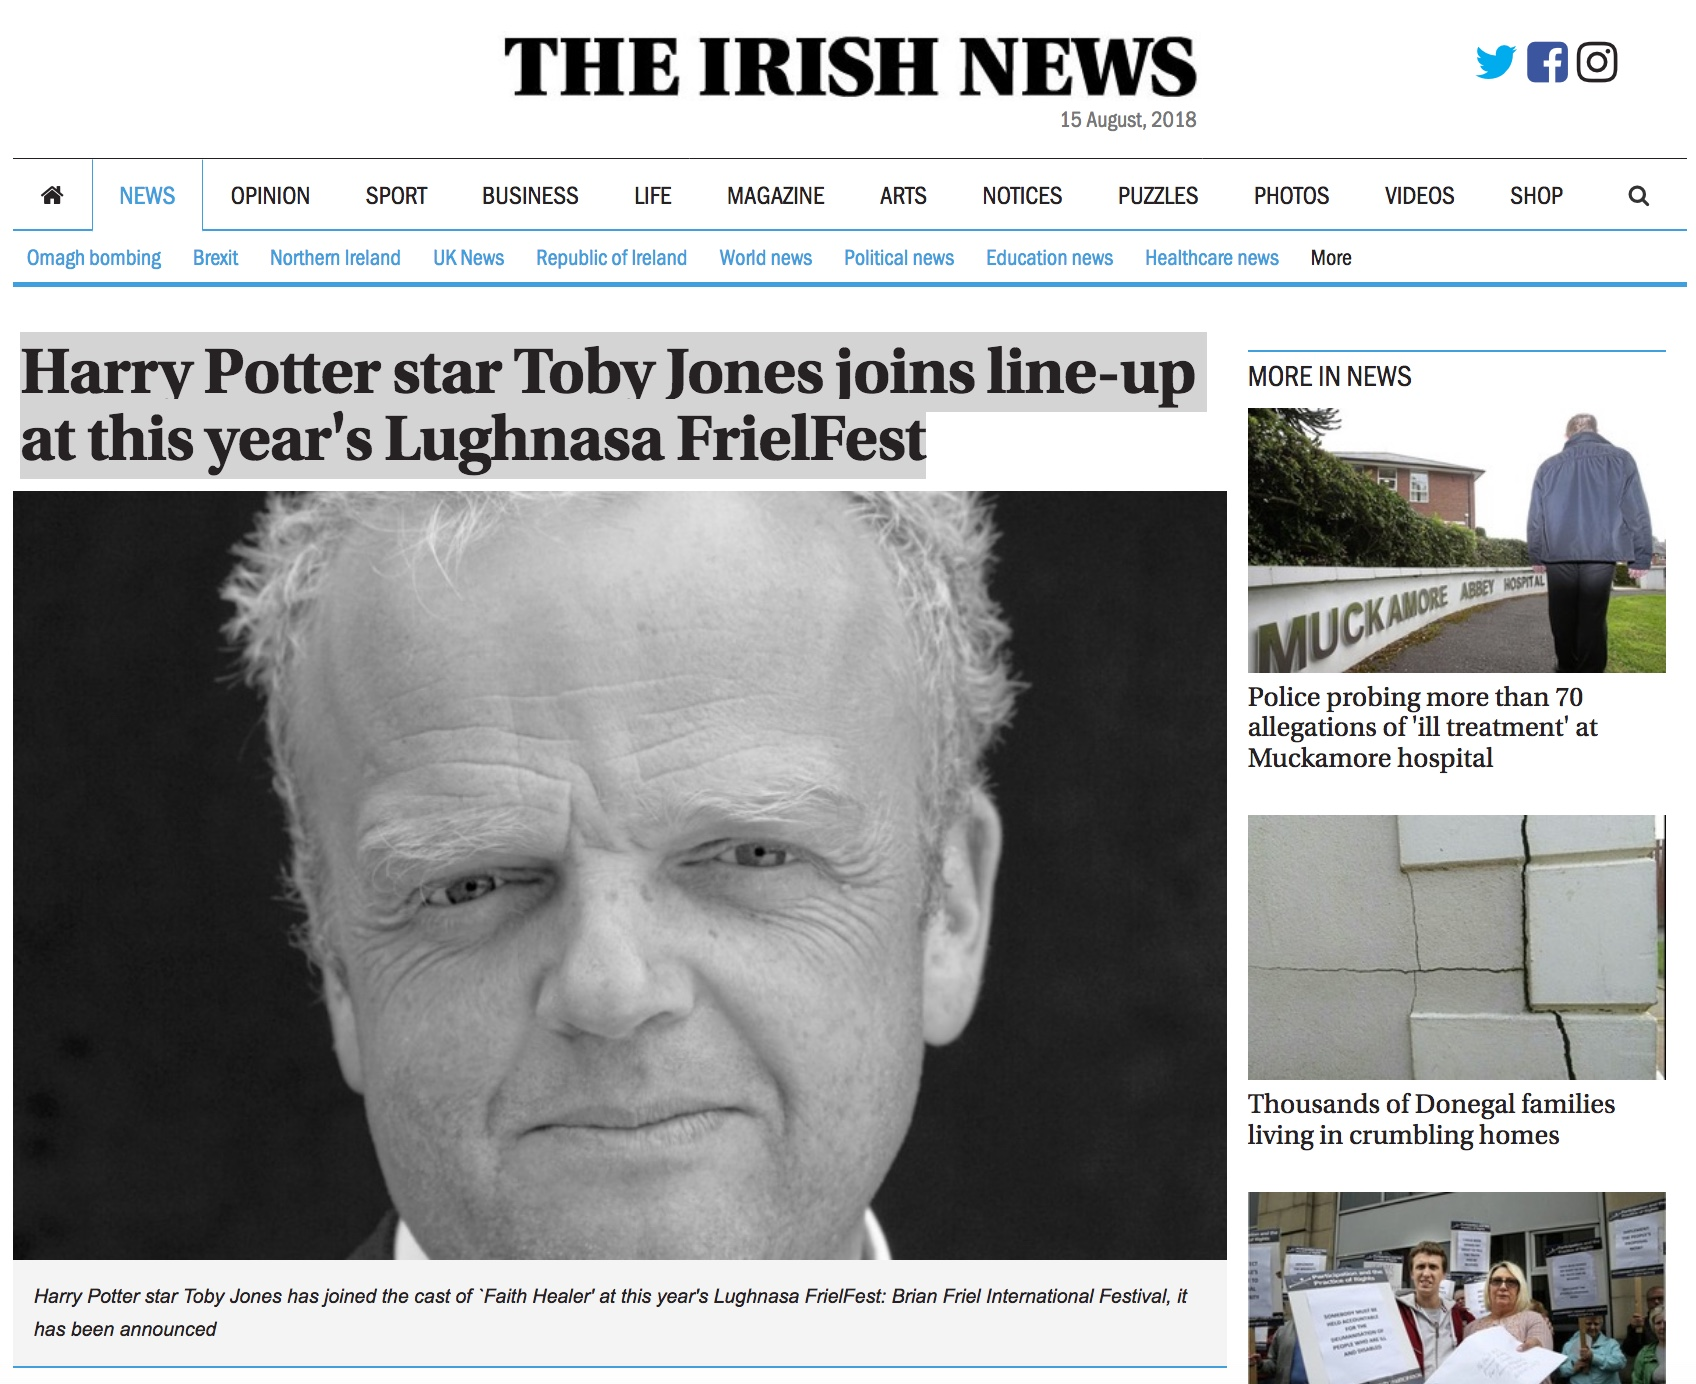 Harry Potter star Toby Jones joins line-up at this year's Lughnasa FrielFest